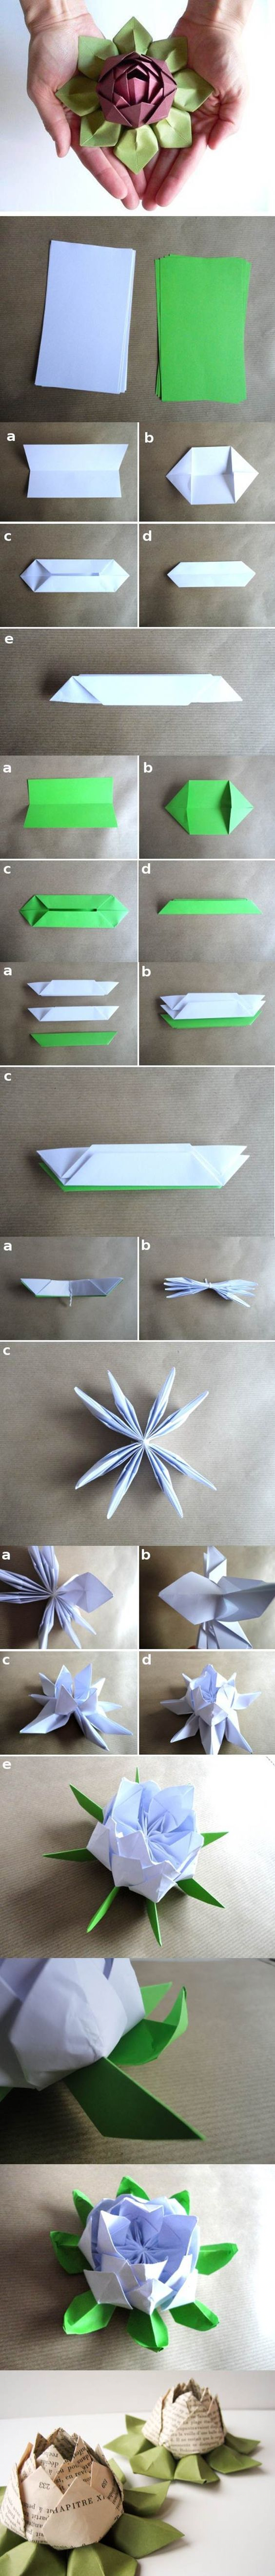 DIY Origami Lotus Flower | iCreativeIdeas.com Like Us on Facebook ==> https://www.facebook.com/icreativeideas: